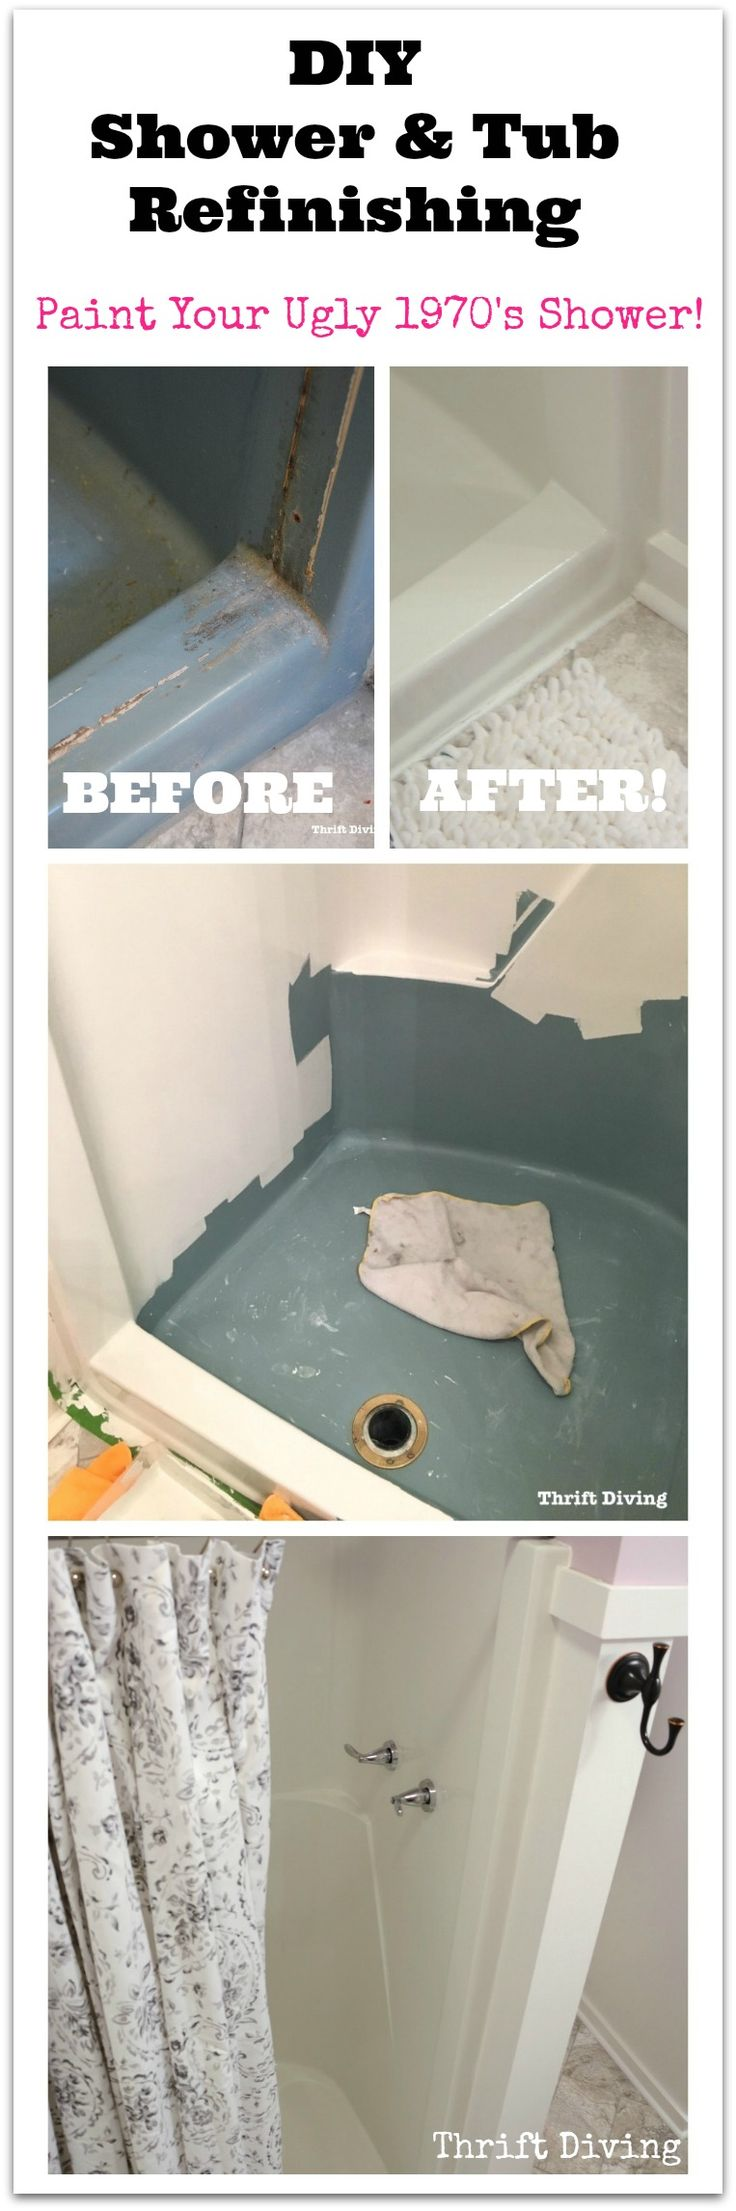 DIY shower and tub refinishing isn't as scary as you may think! My old 1970's turquoise shower stall needed a facelift. Replacing the shower would have cost me $6,000. But for much less, I painted my ugly shower stall using a BathWorks bathtub refinishing kit. See how I did it, and watch my complete 12-minutes YouTube tutorial!